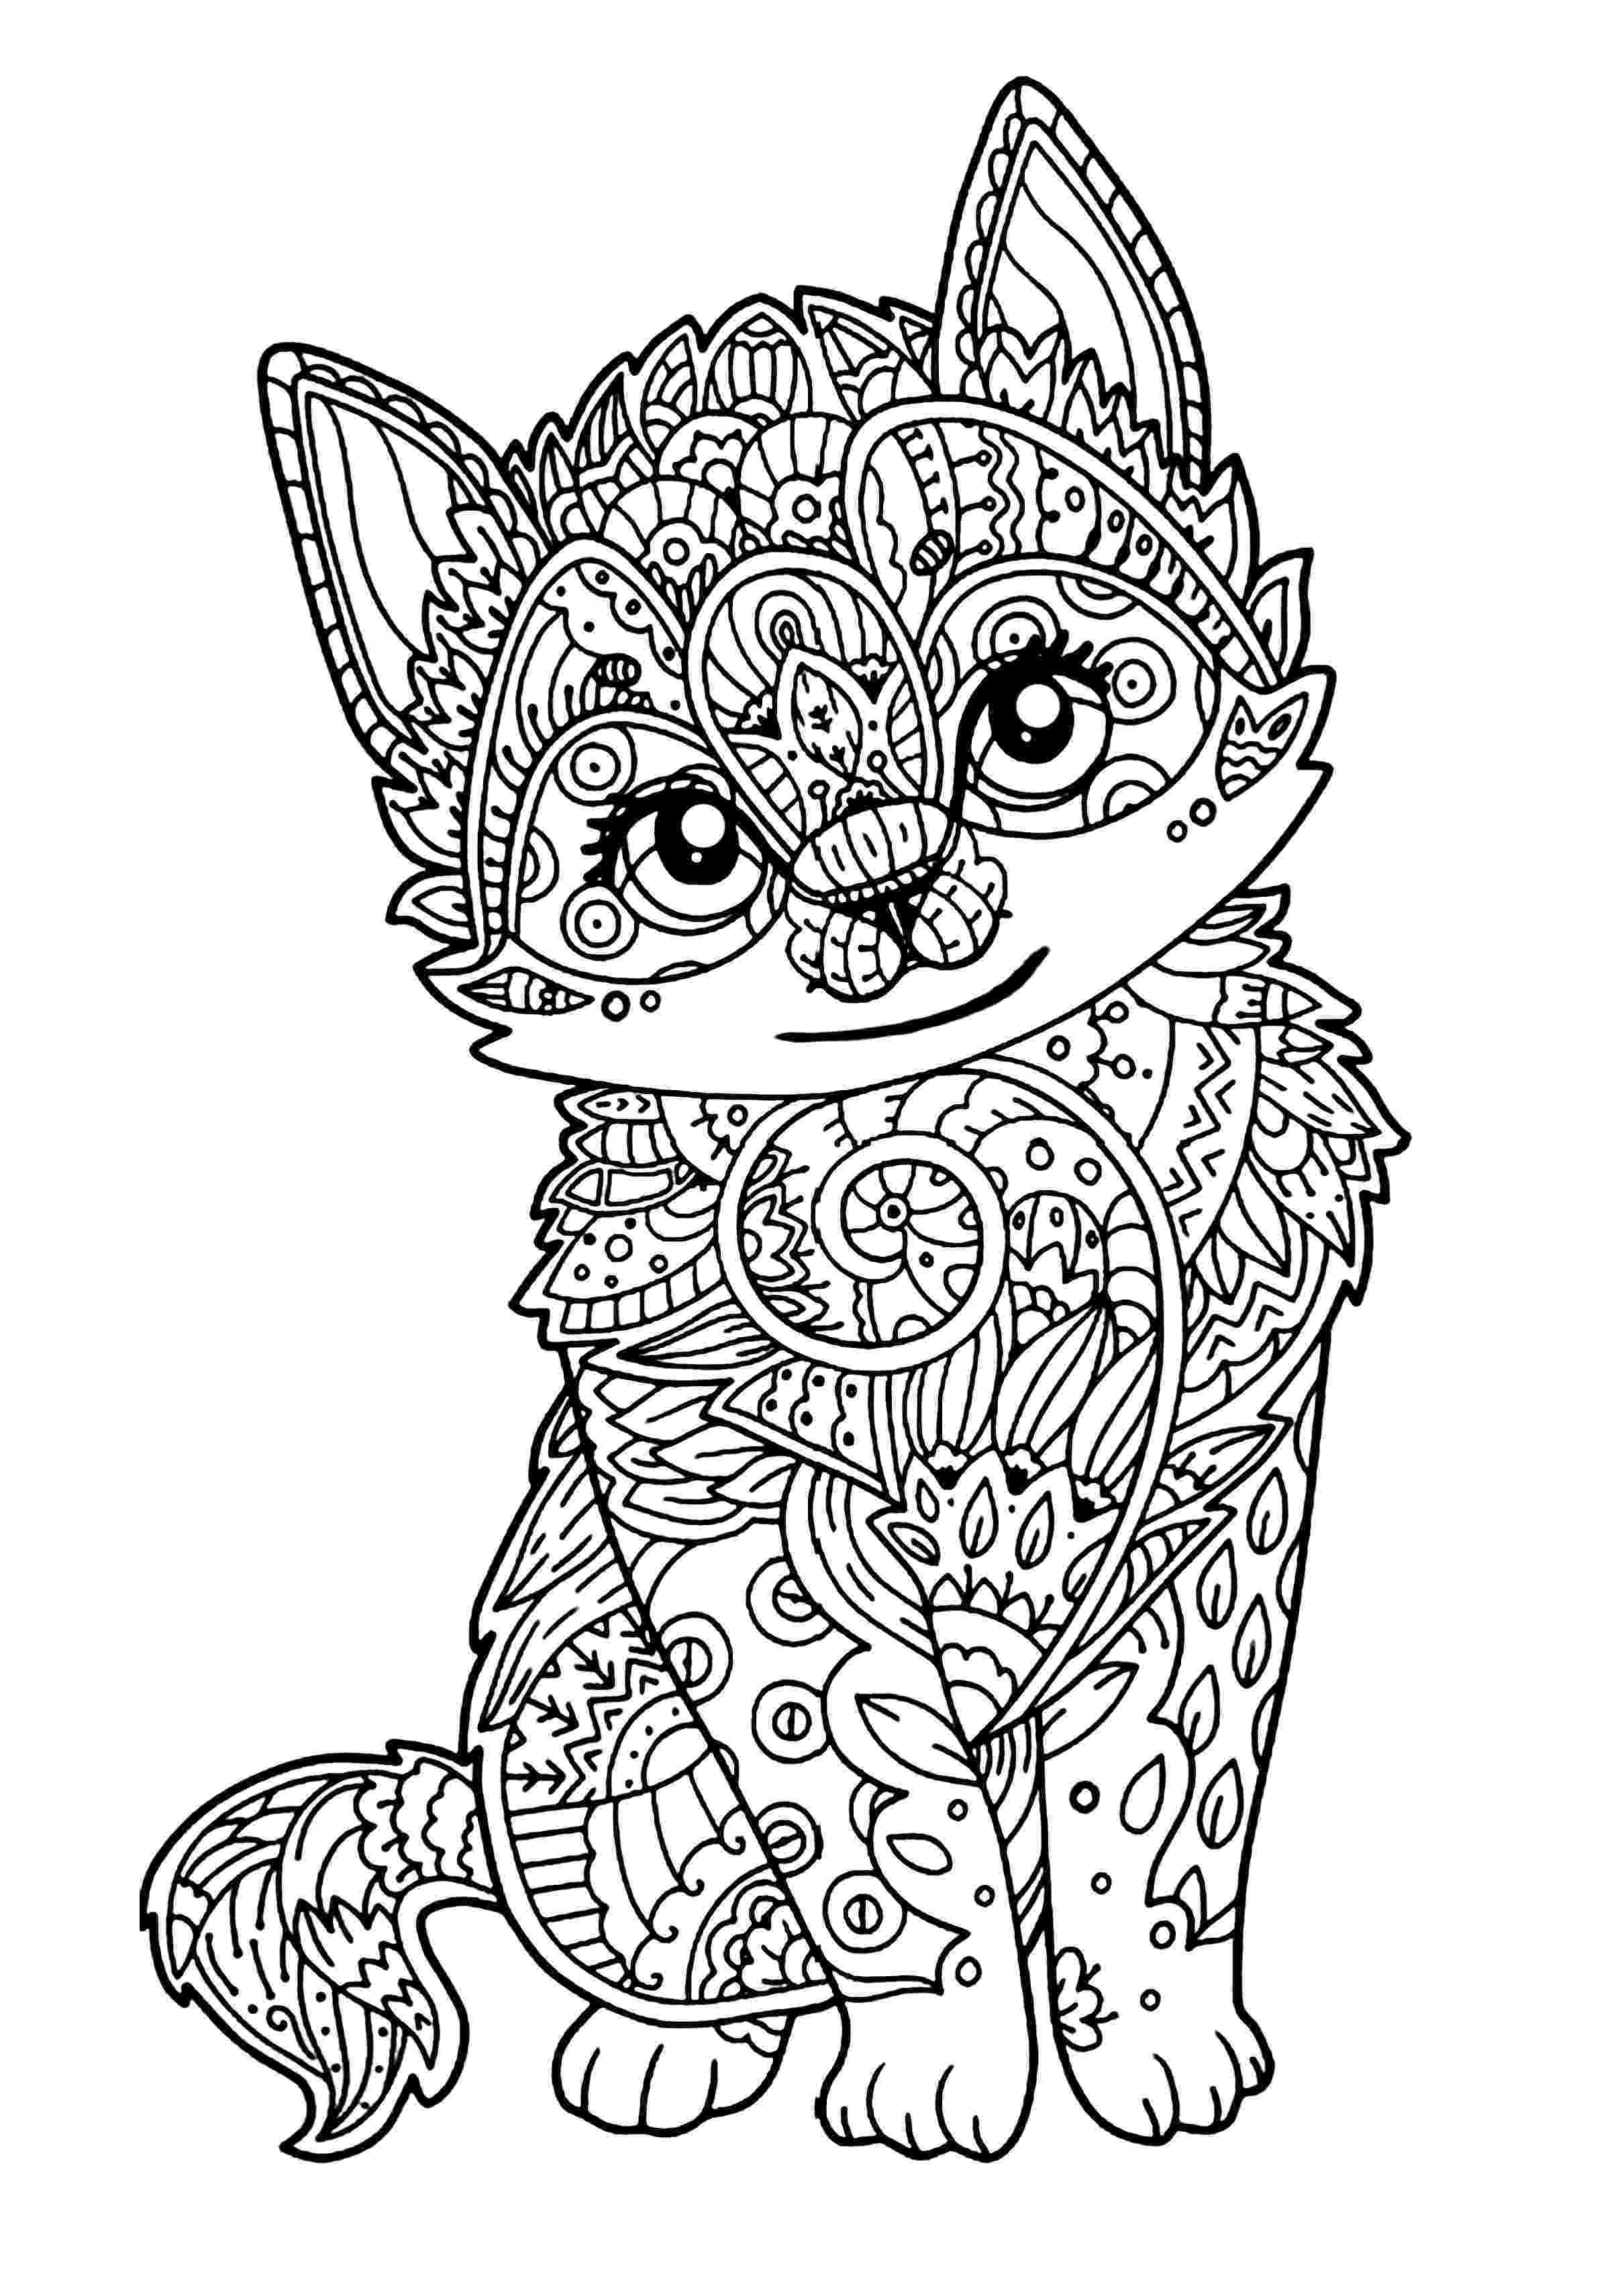 free online coloring pages for adults cats cat coloring pages for adults best coloring pages for kids cats pages adults coloring online for free